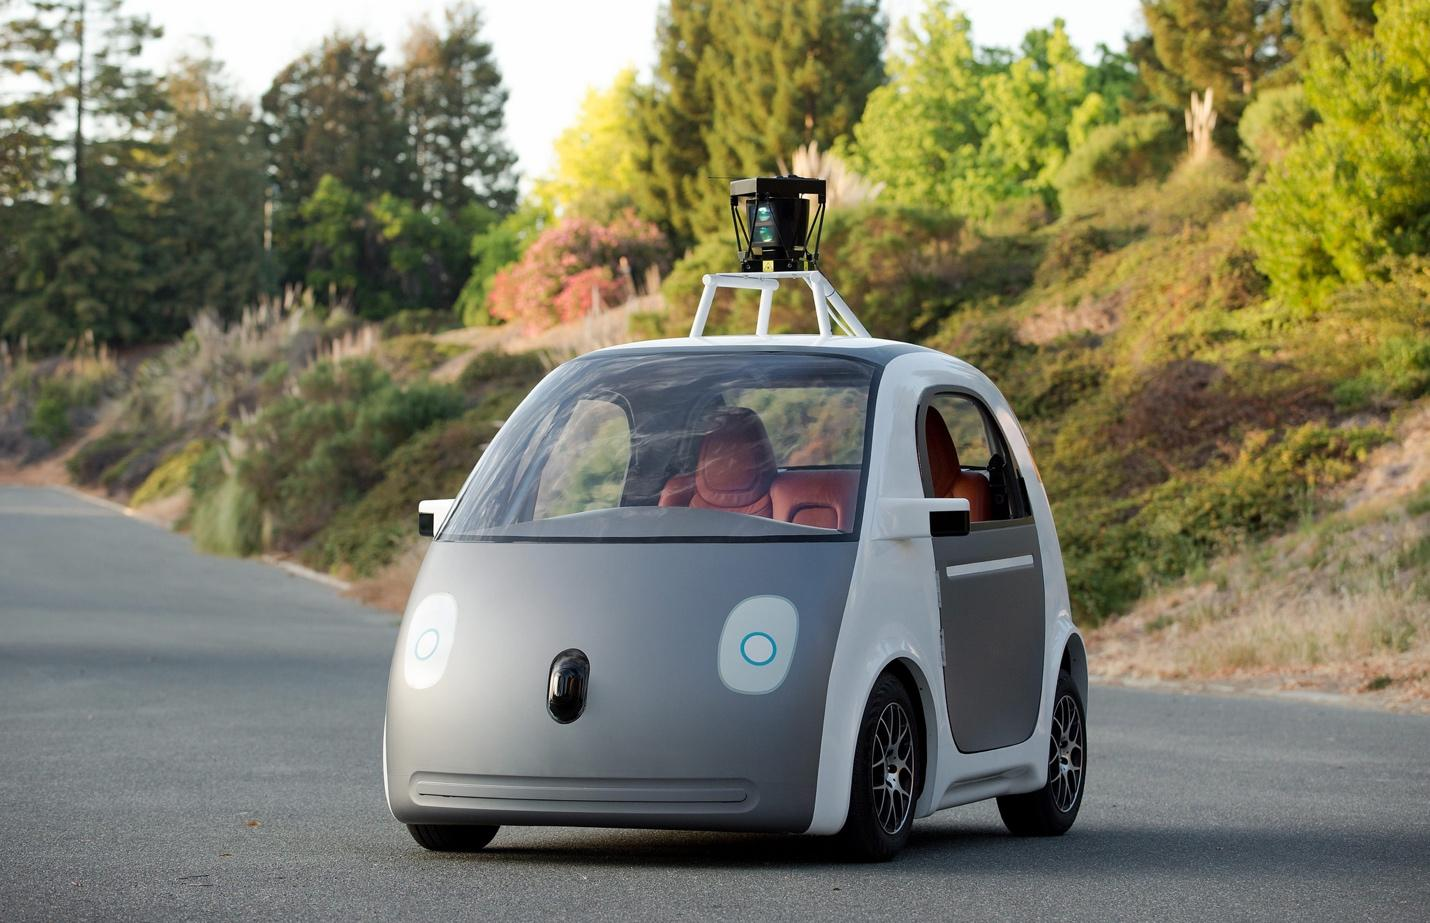 Racing Towards Tomorrow: Who Will Build the Ideal Self-Driving Car?